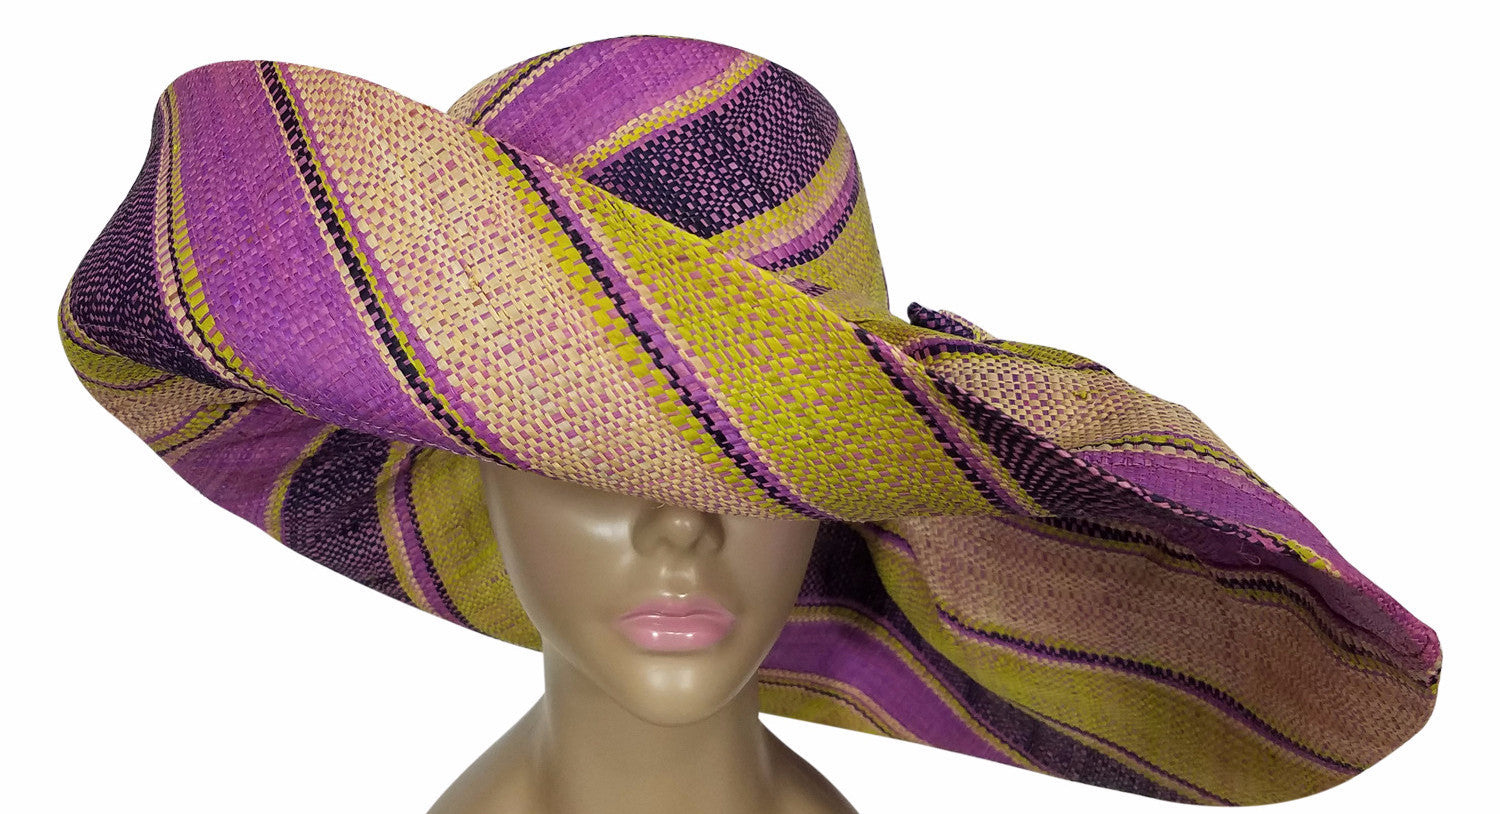 Cher: Authentic African Hand Made Muti-Colored Madagascar Big Brim Raffia Sun Hat